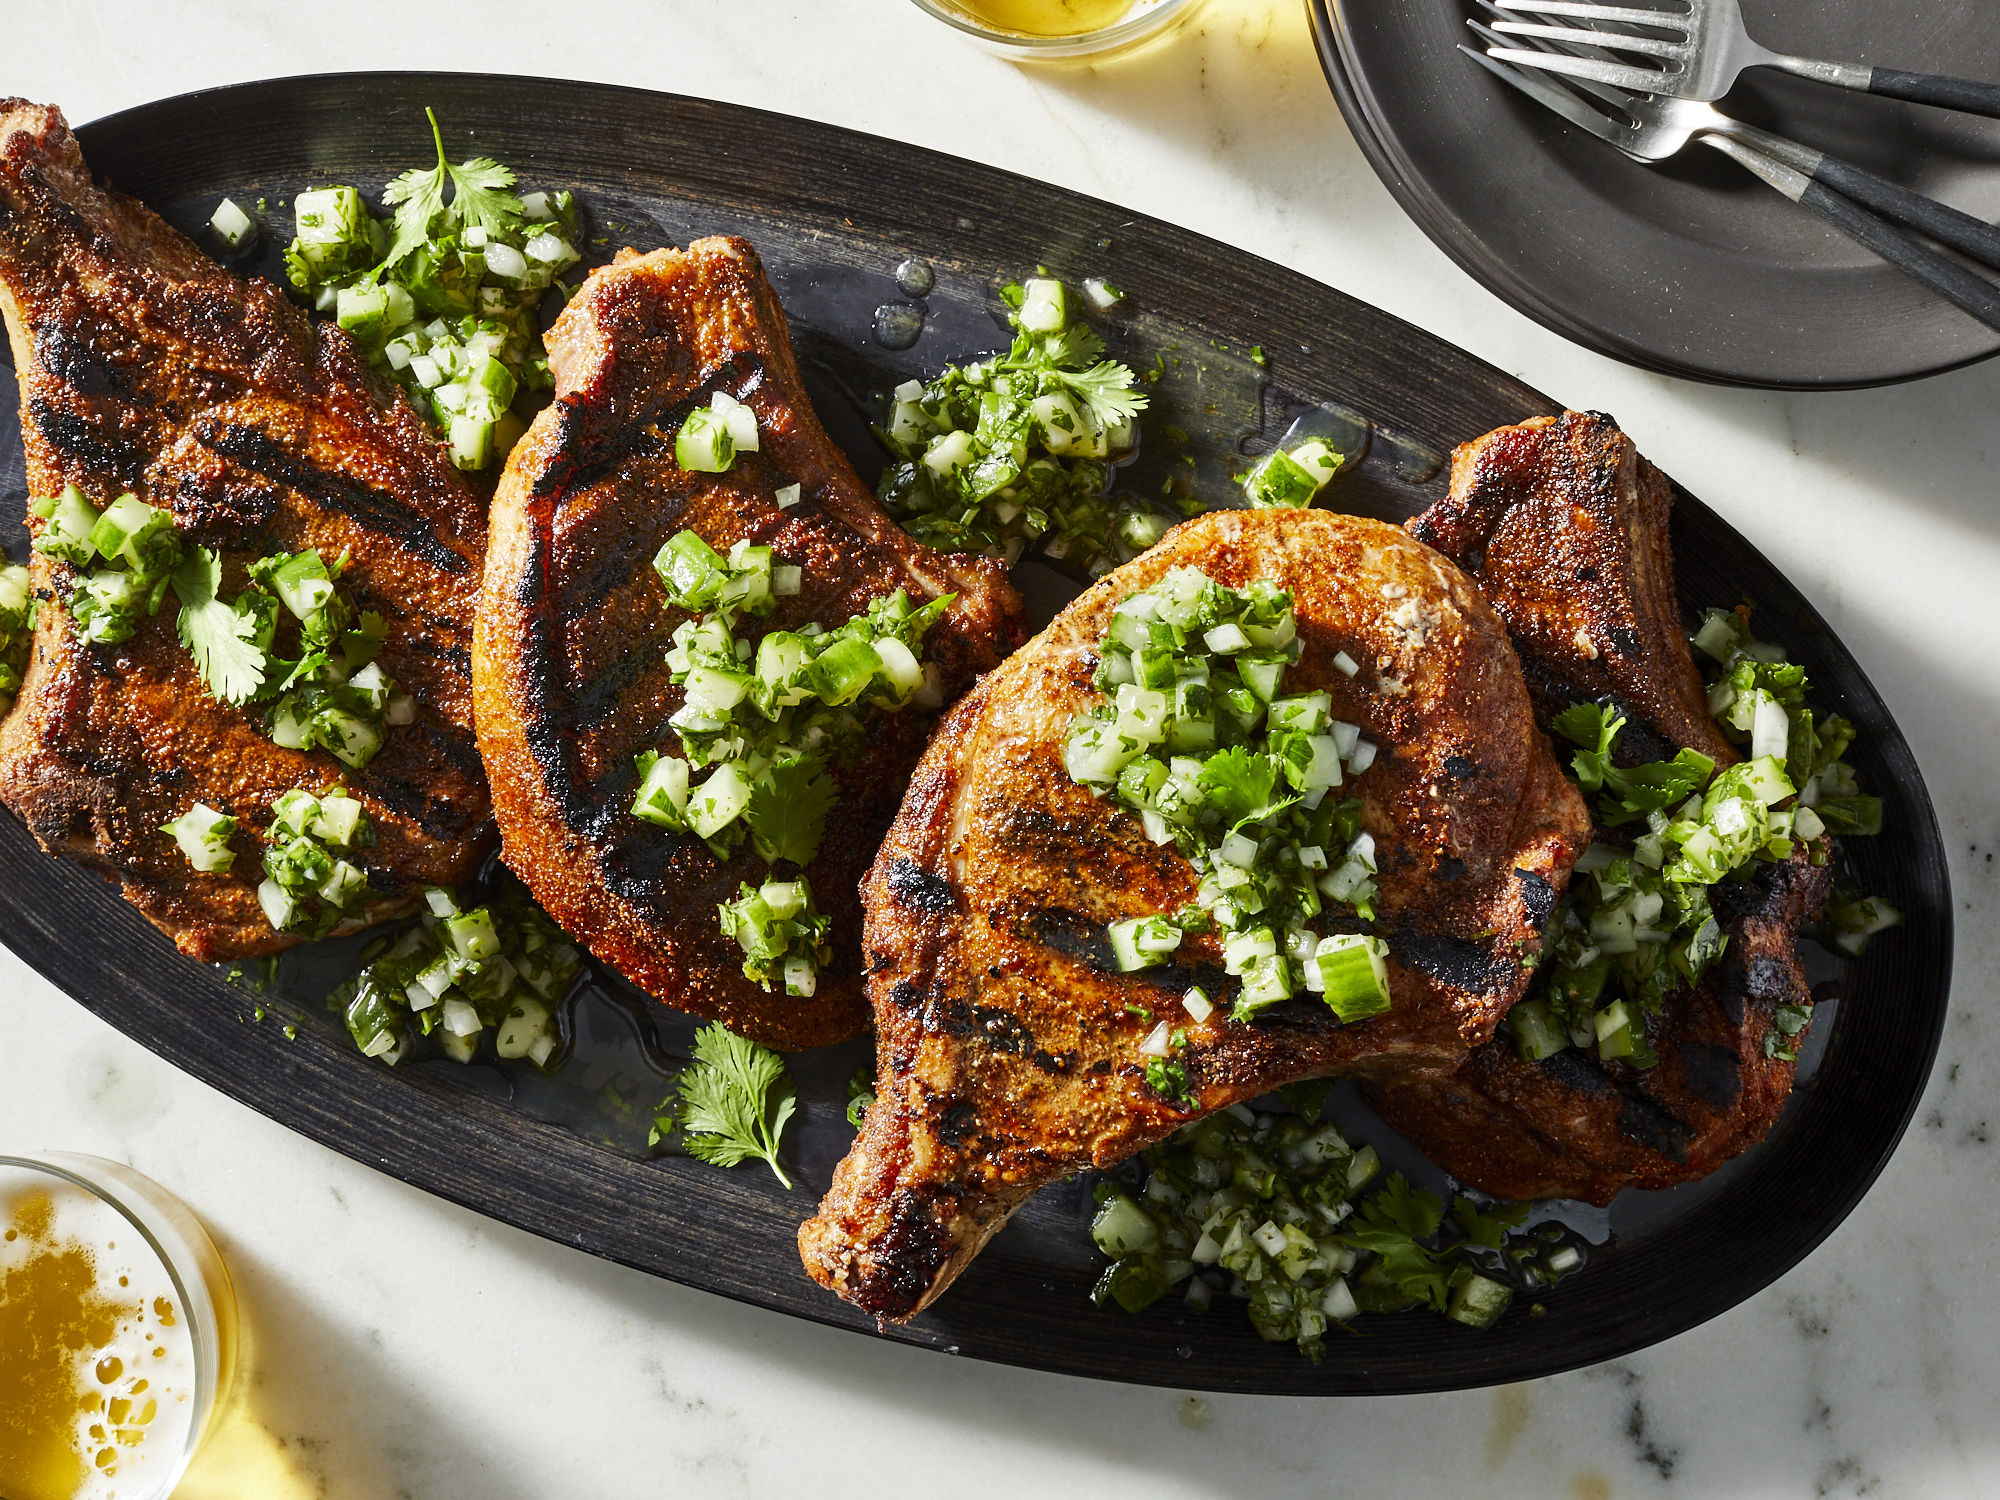 Spiced Pork Chops with Cucumber Pico de Gallo